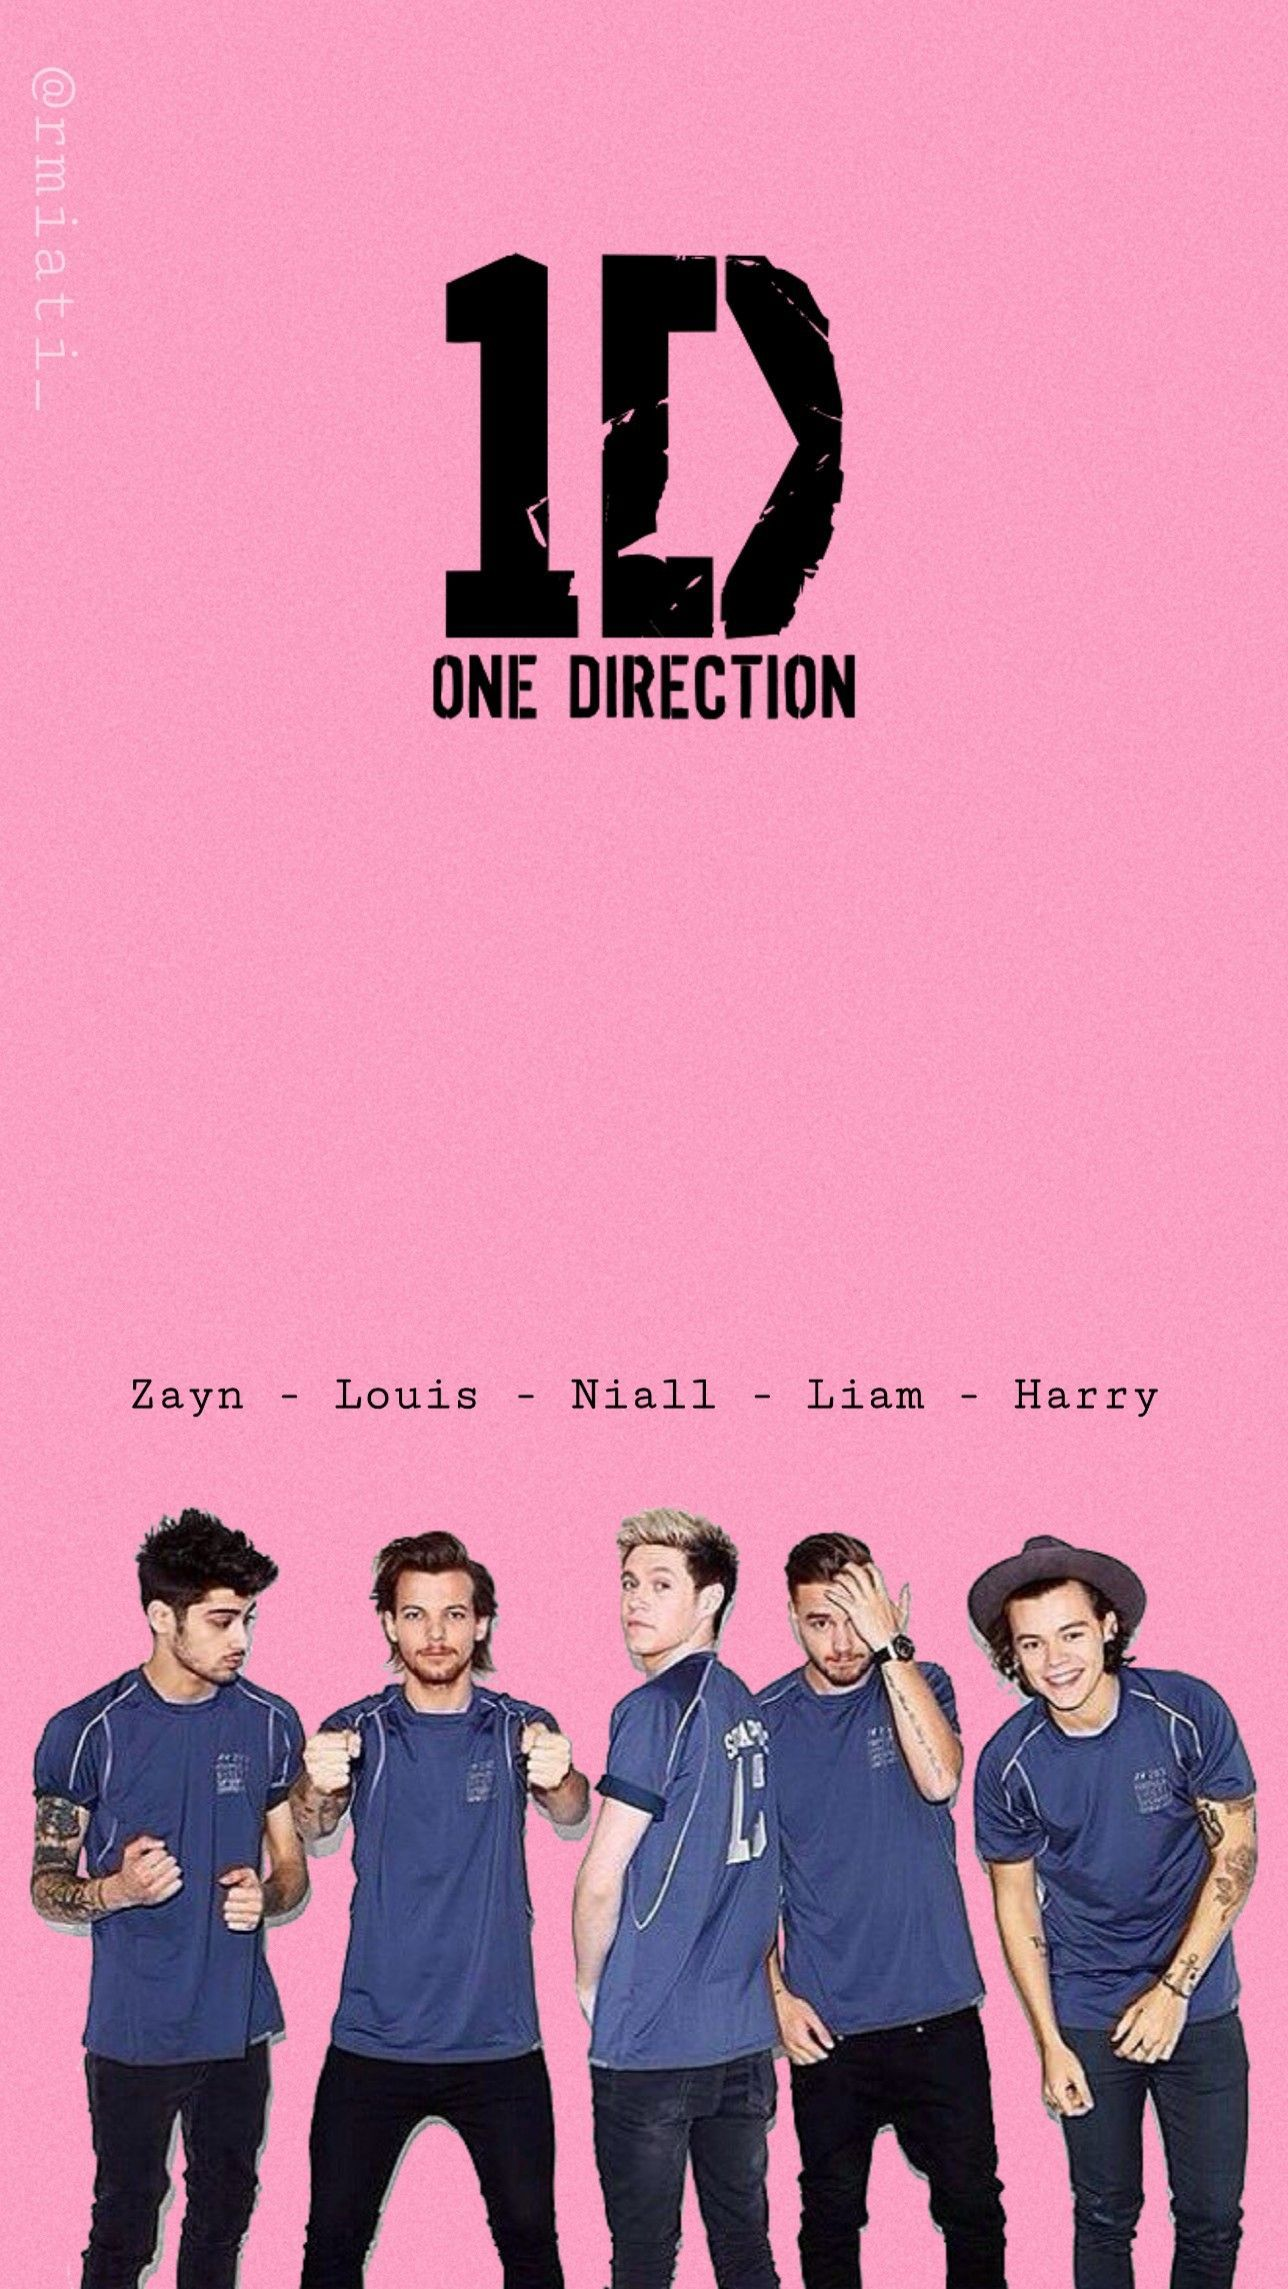 1D onedirectionbackground One direction wallpaper, One